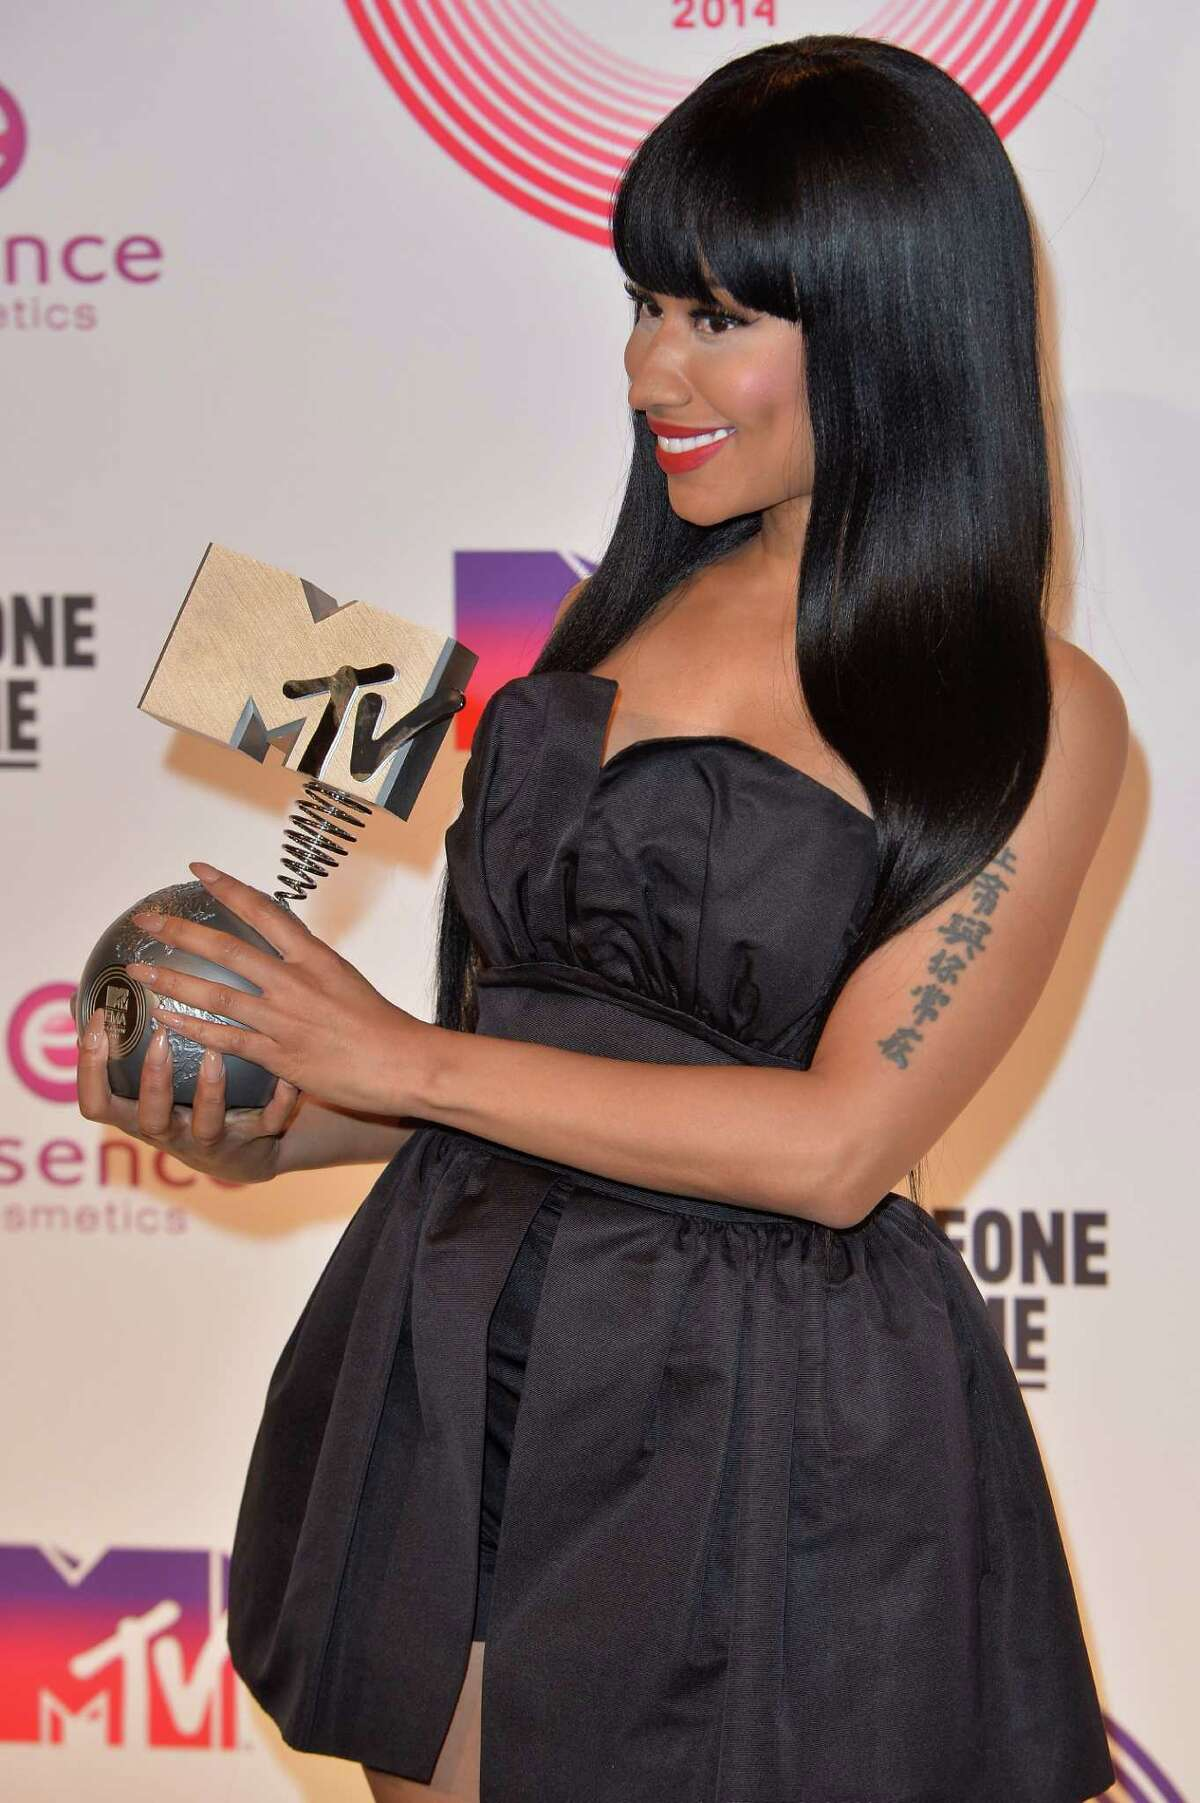 Nicki Minaj is both host and nominee as Scotland lends a tartan touch to the MTV Europe Music Awards. Here she poses backstage with her Best Hip Hop trophy during the MTV EMA's 2014 at The Hydro on November 9, 2014 in Glasgow, Scotland.